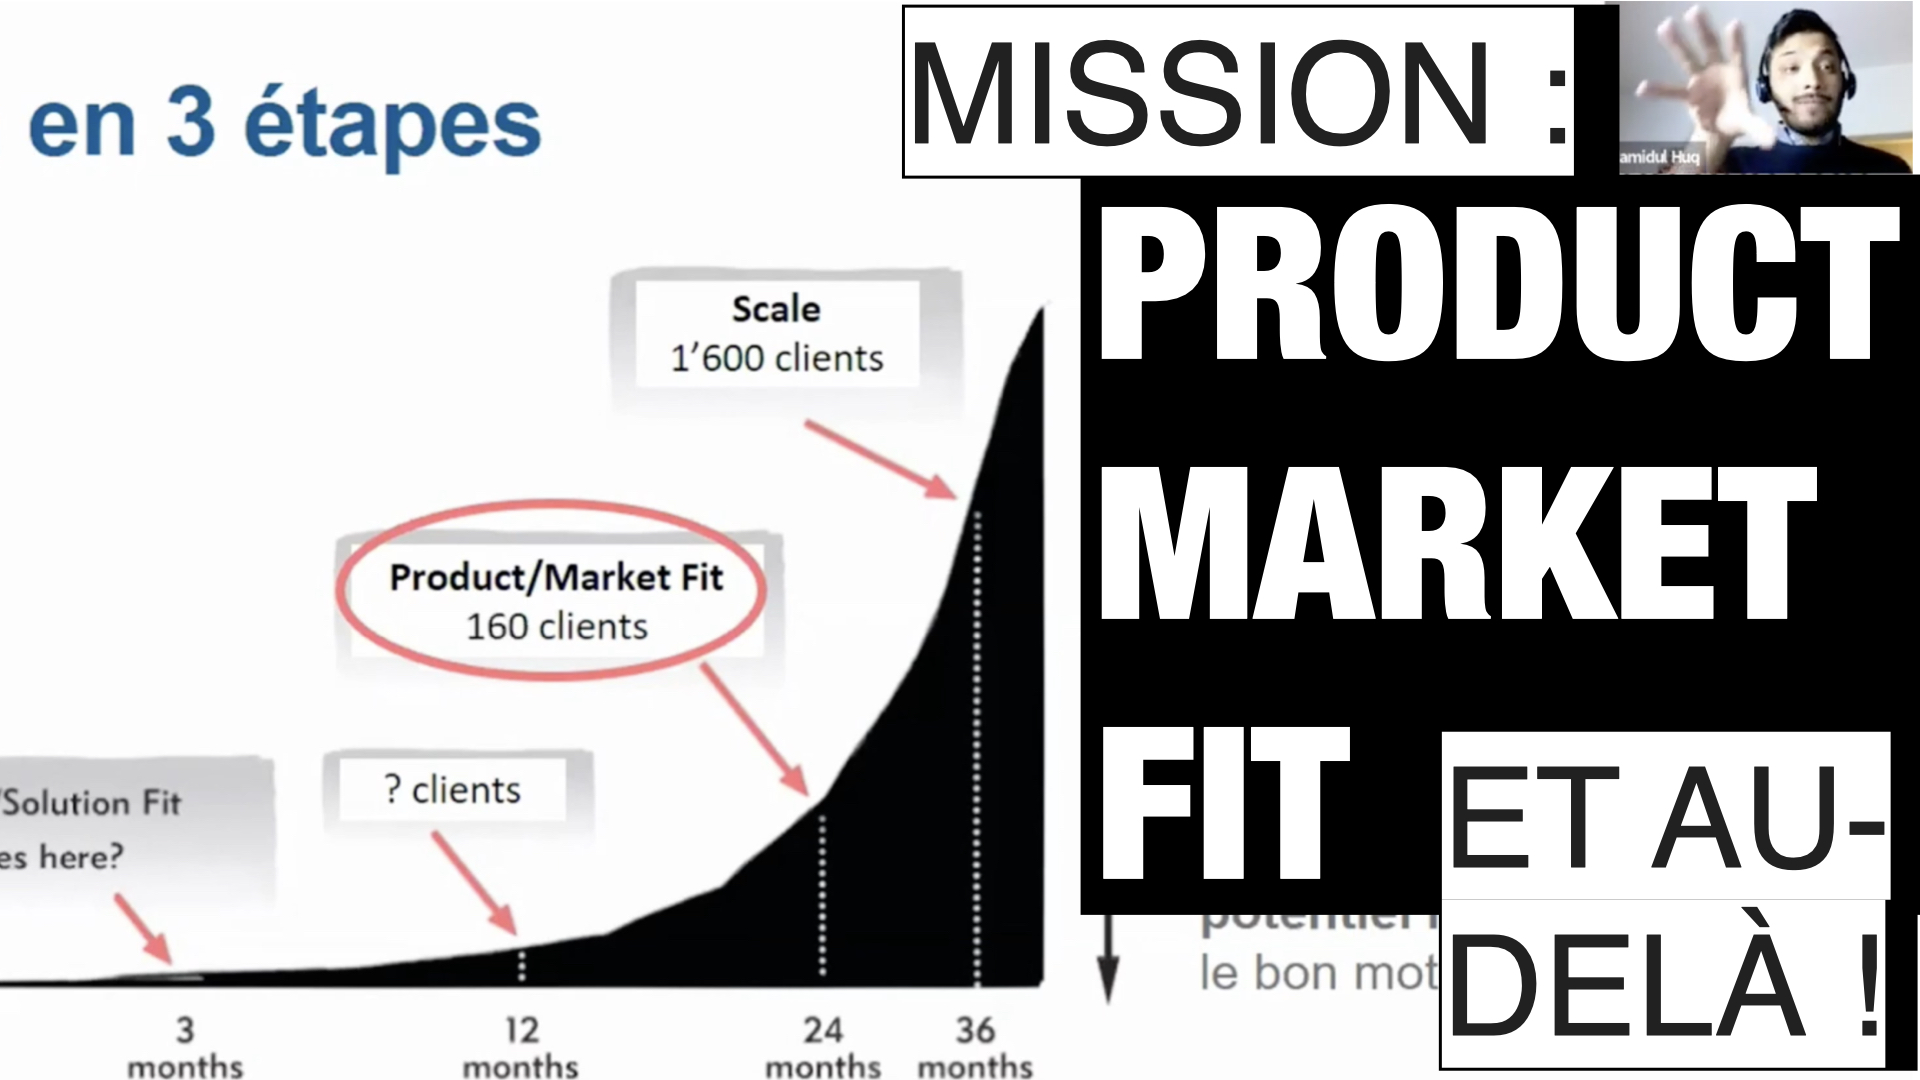 Mission : Product Market Fit et au-delà !